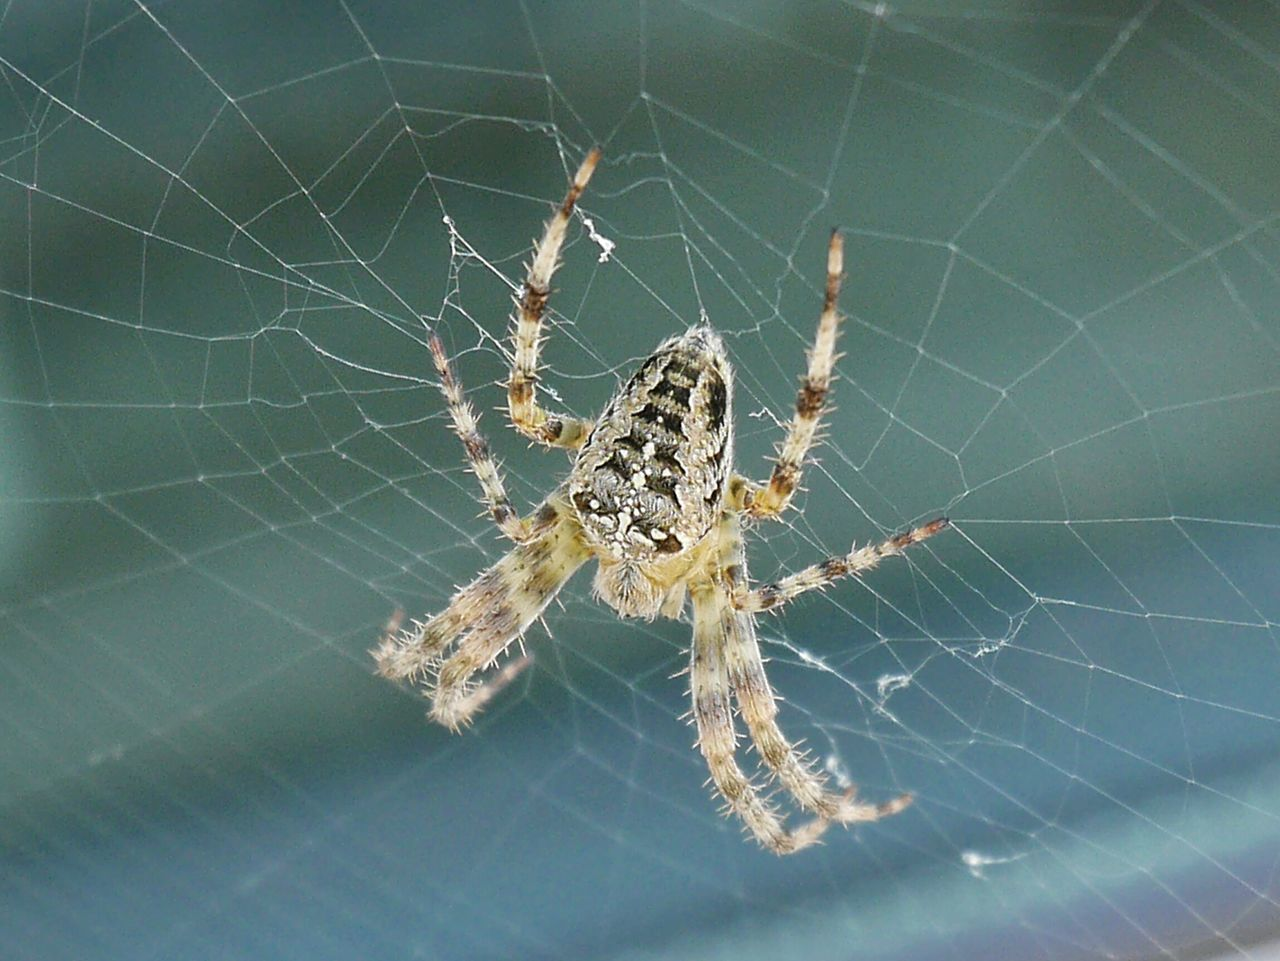 Beautiful stock photos of spider's, spider web, one animal, animal themes, insect